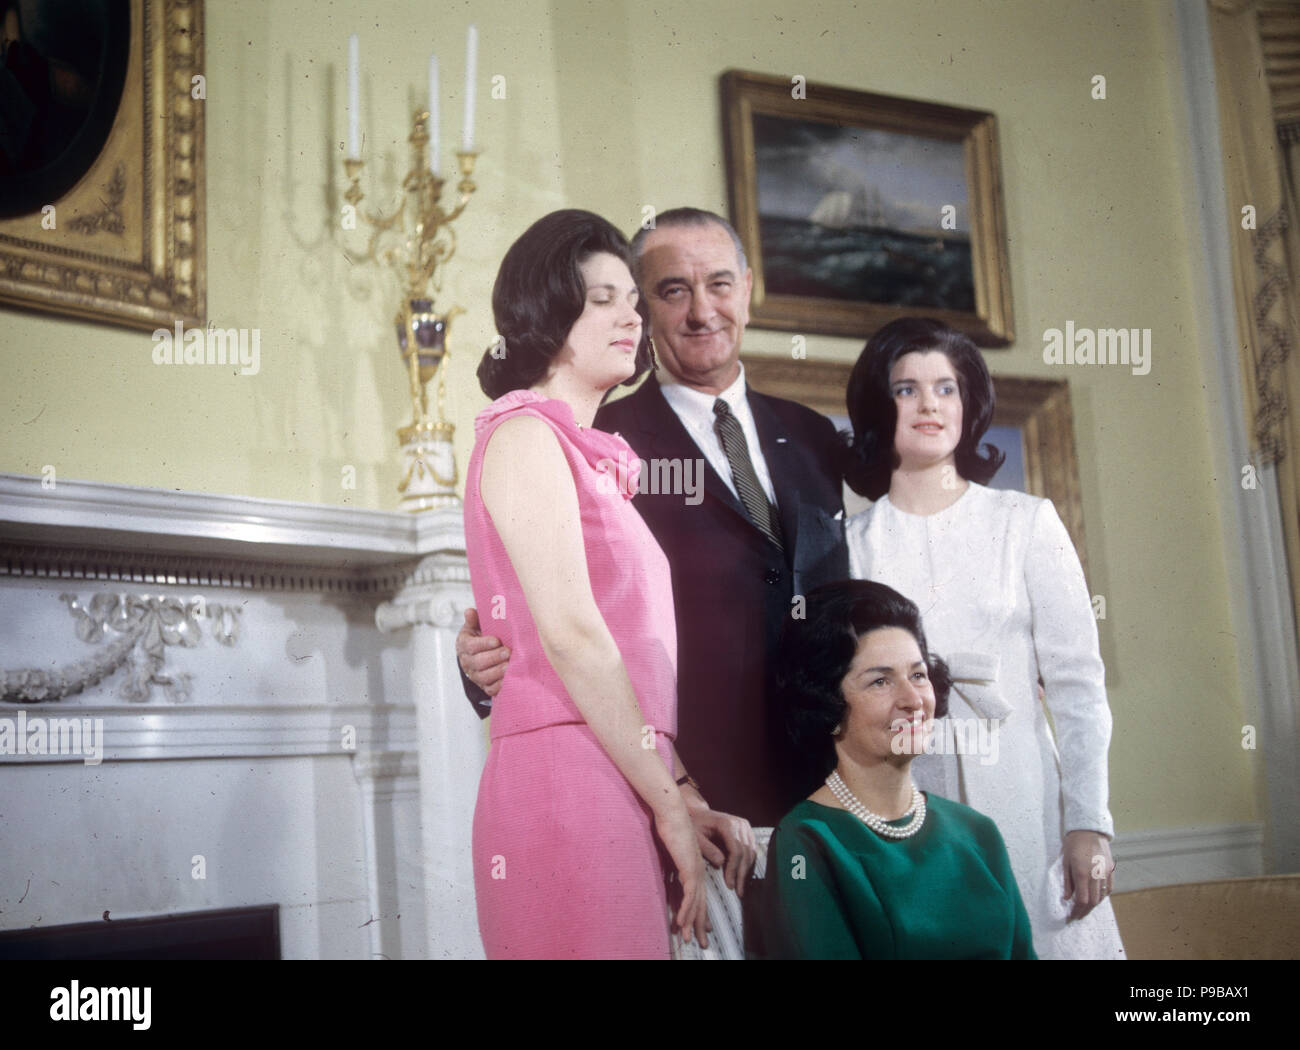 LYNDON B. JOHNSON (1908-1973) as 36th President of the United States with his wife Lady Bird and daughters Luci at left and Lyn about 1964 Stock Photo